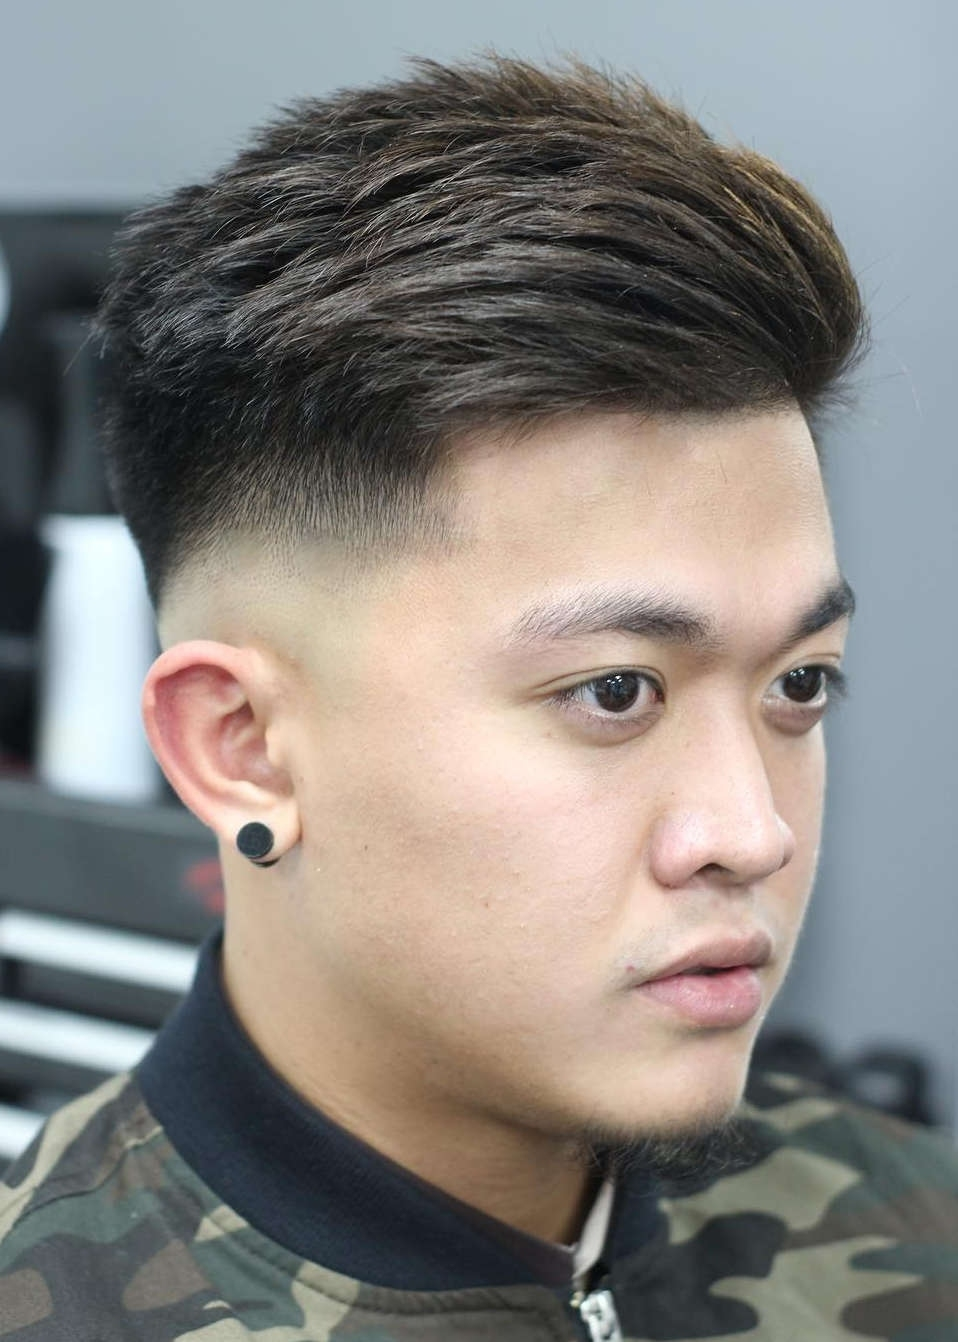 Top 30 Trendy Asian Men Hairstyles 2019 intended for Asian Boy Hairstyles 2018